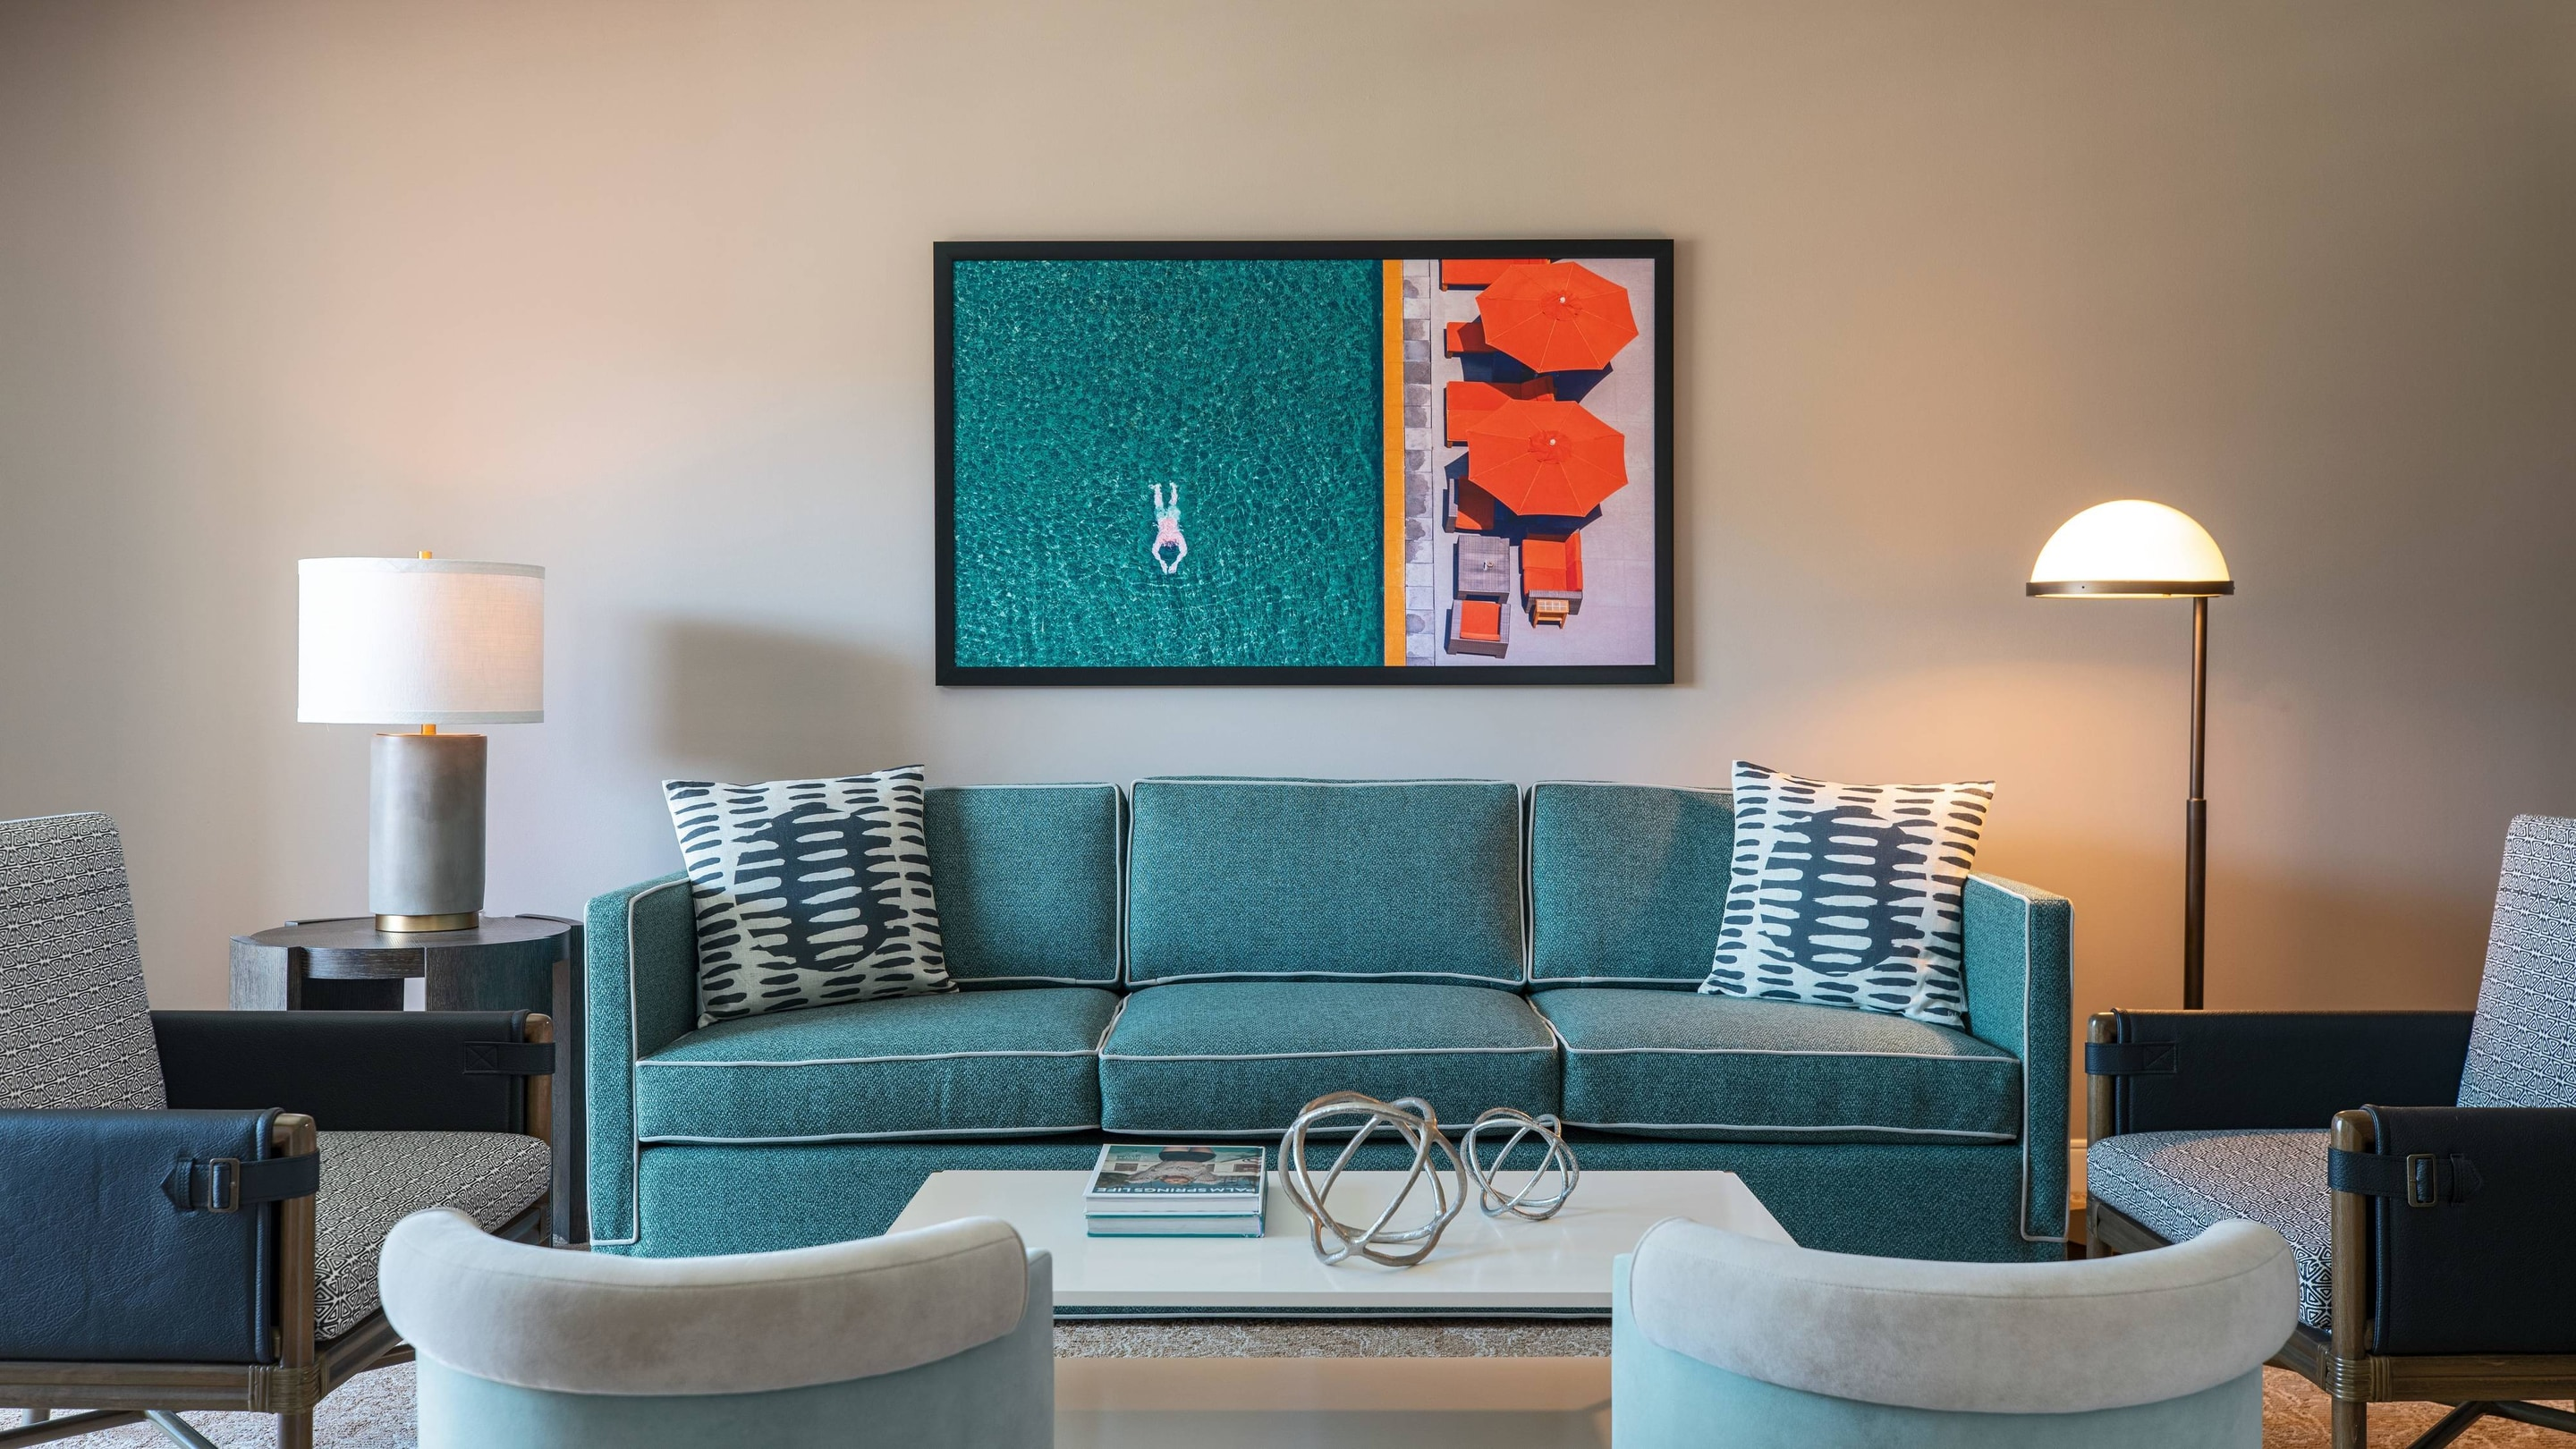 Assorted living area seating focusing on a three-cushion, teal green sofa and wall art.